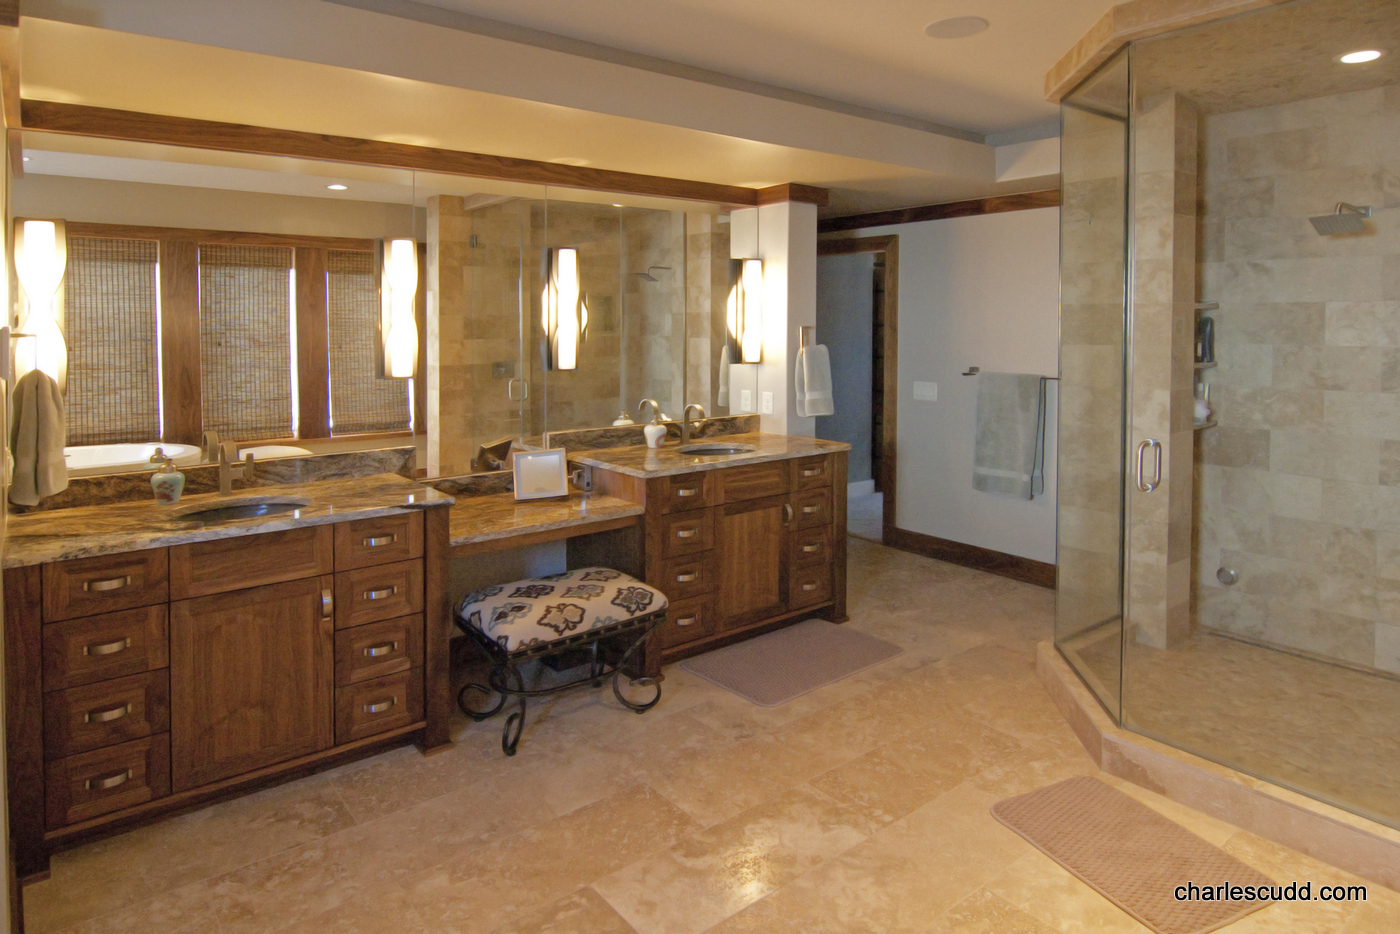 Edina_Halifax-MasterBath2.jpg